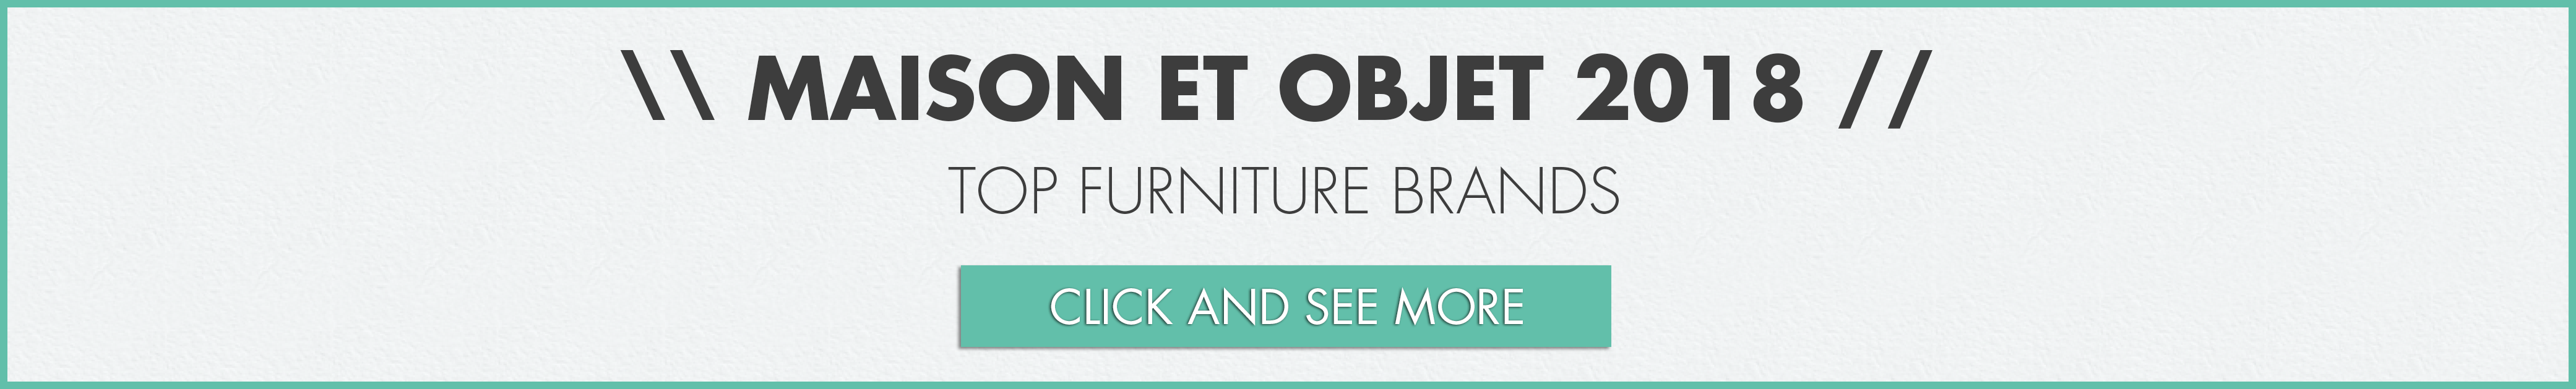 Top Furniture Brands